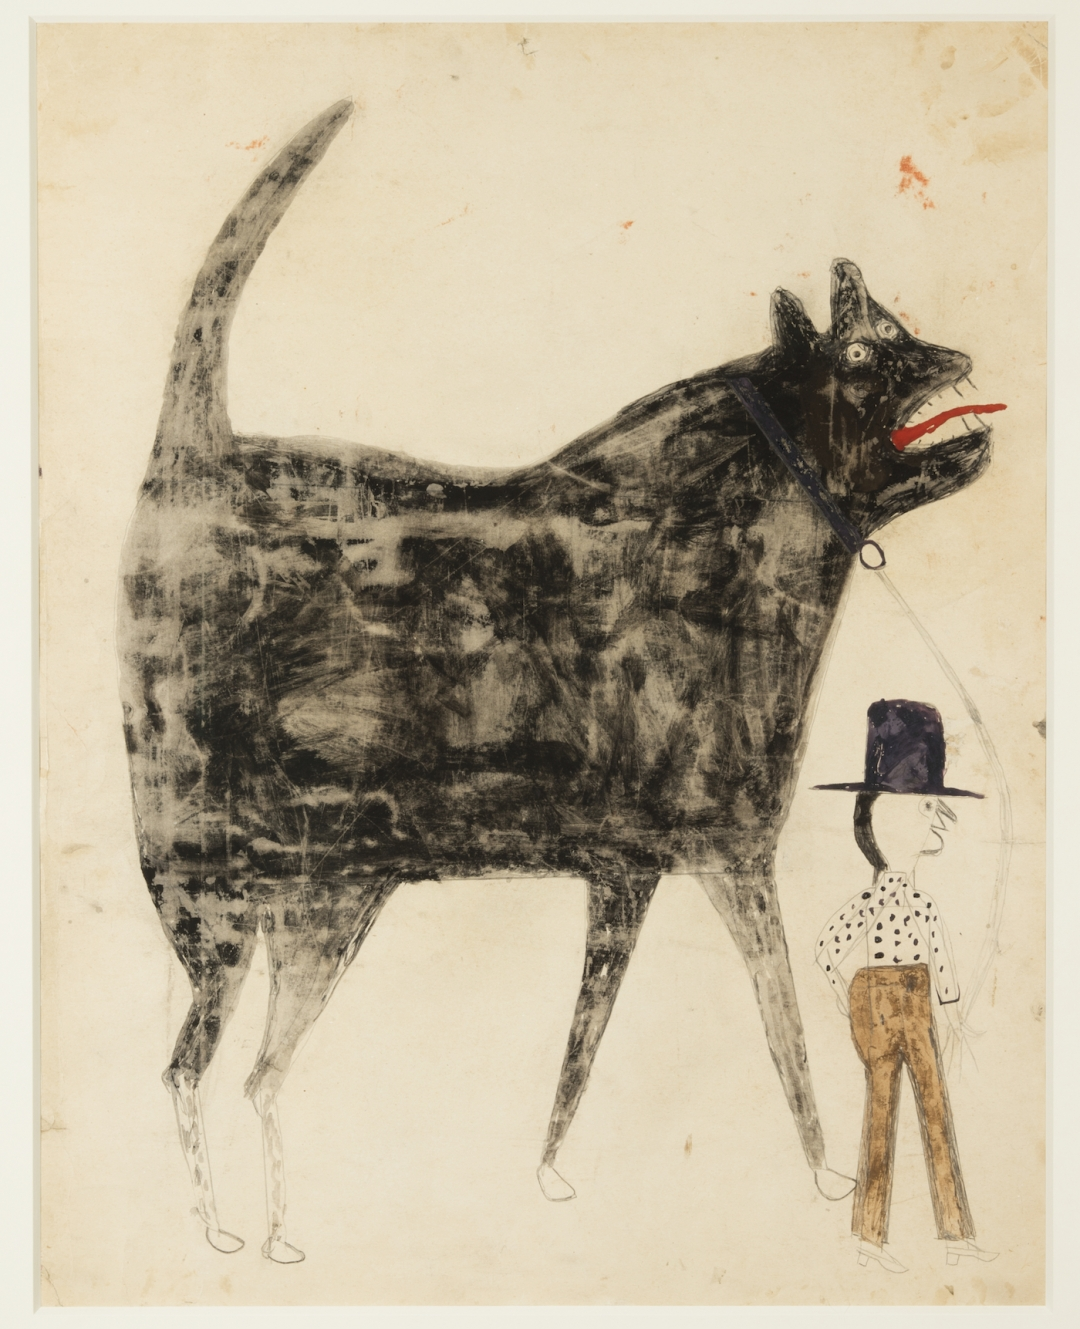 Bill Traylor,  Man and Large Dog , 1932-1942, poster paint and pencil on cardboard. Dogs are regular motifs in Traylor's work, varying from small and friendly looking animals to monsters. Of course dogs would have played a particular role in Traylor's formative years as a salve, and a similar role after the defeat of Reconstruction.